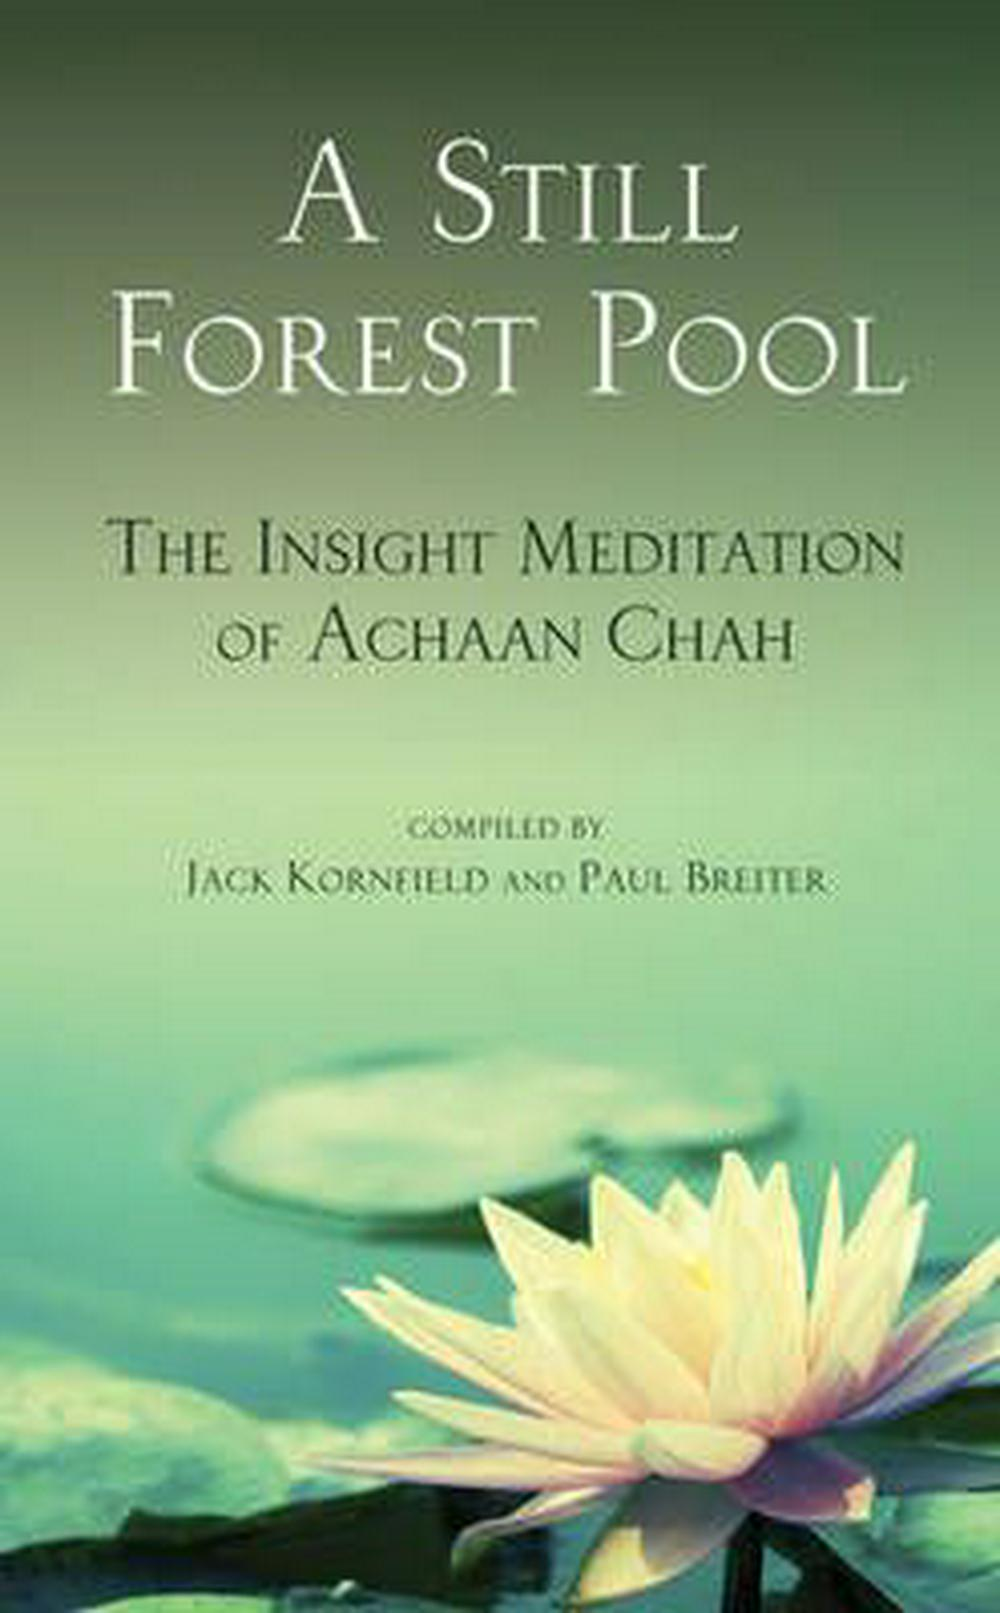 A Still Forest Pool by Achaan Chah, ISBN: 9780835605977